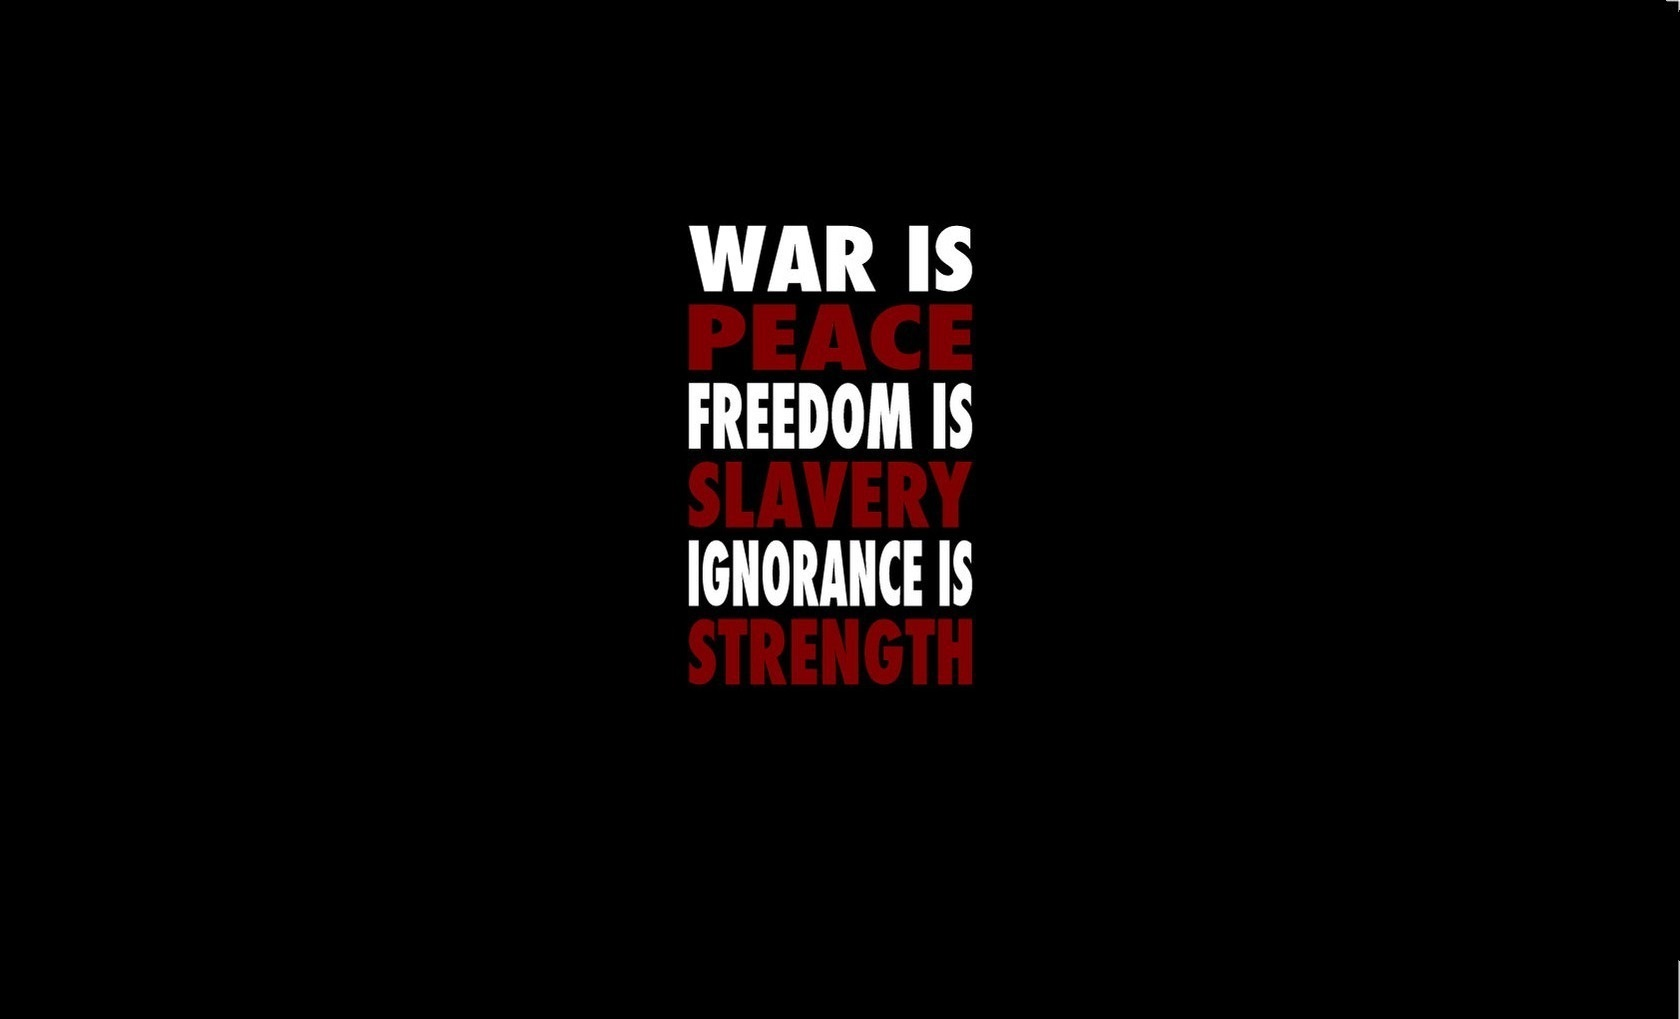 war is peace freedom is slavery ignorance is strength War Is Peace Freedom Is Slavery Ignorance Is Strength